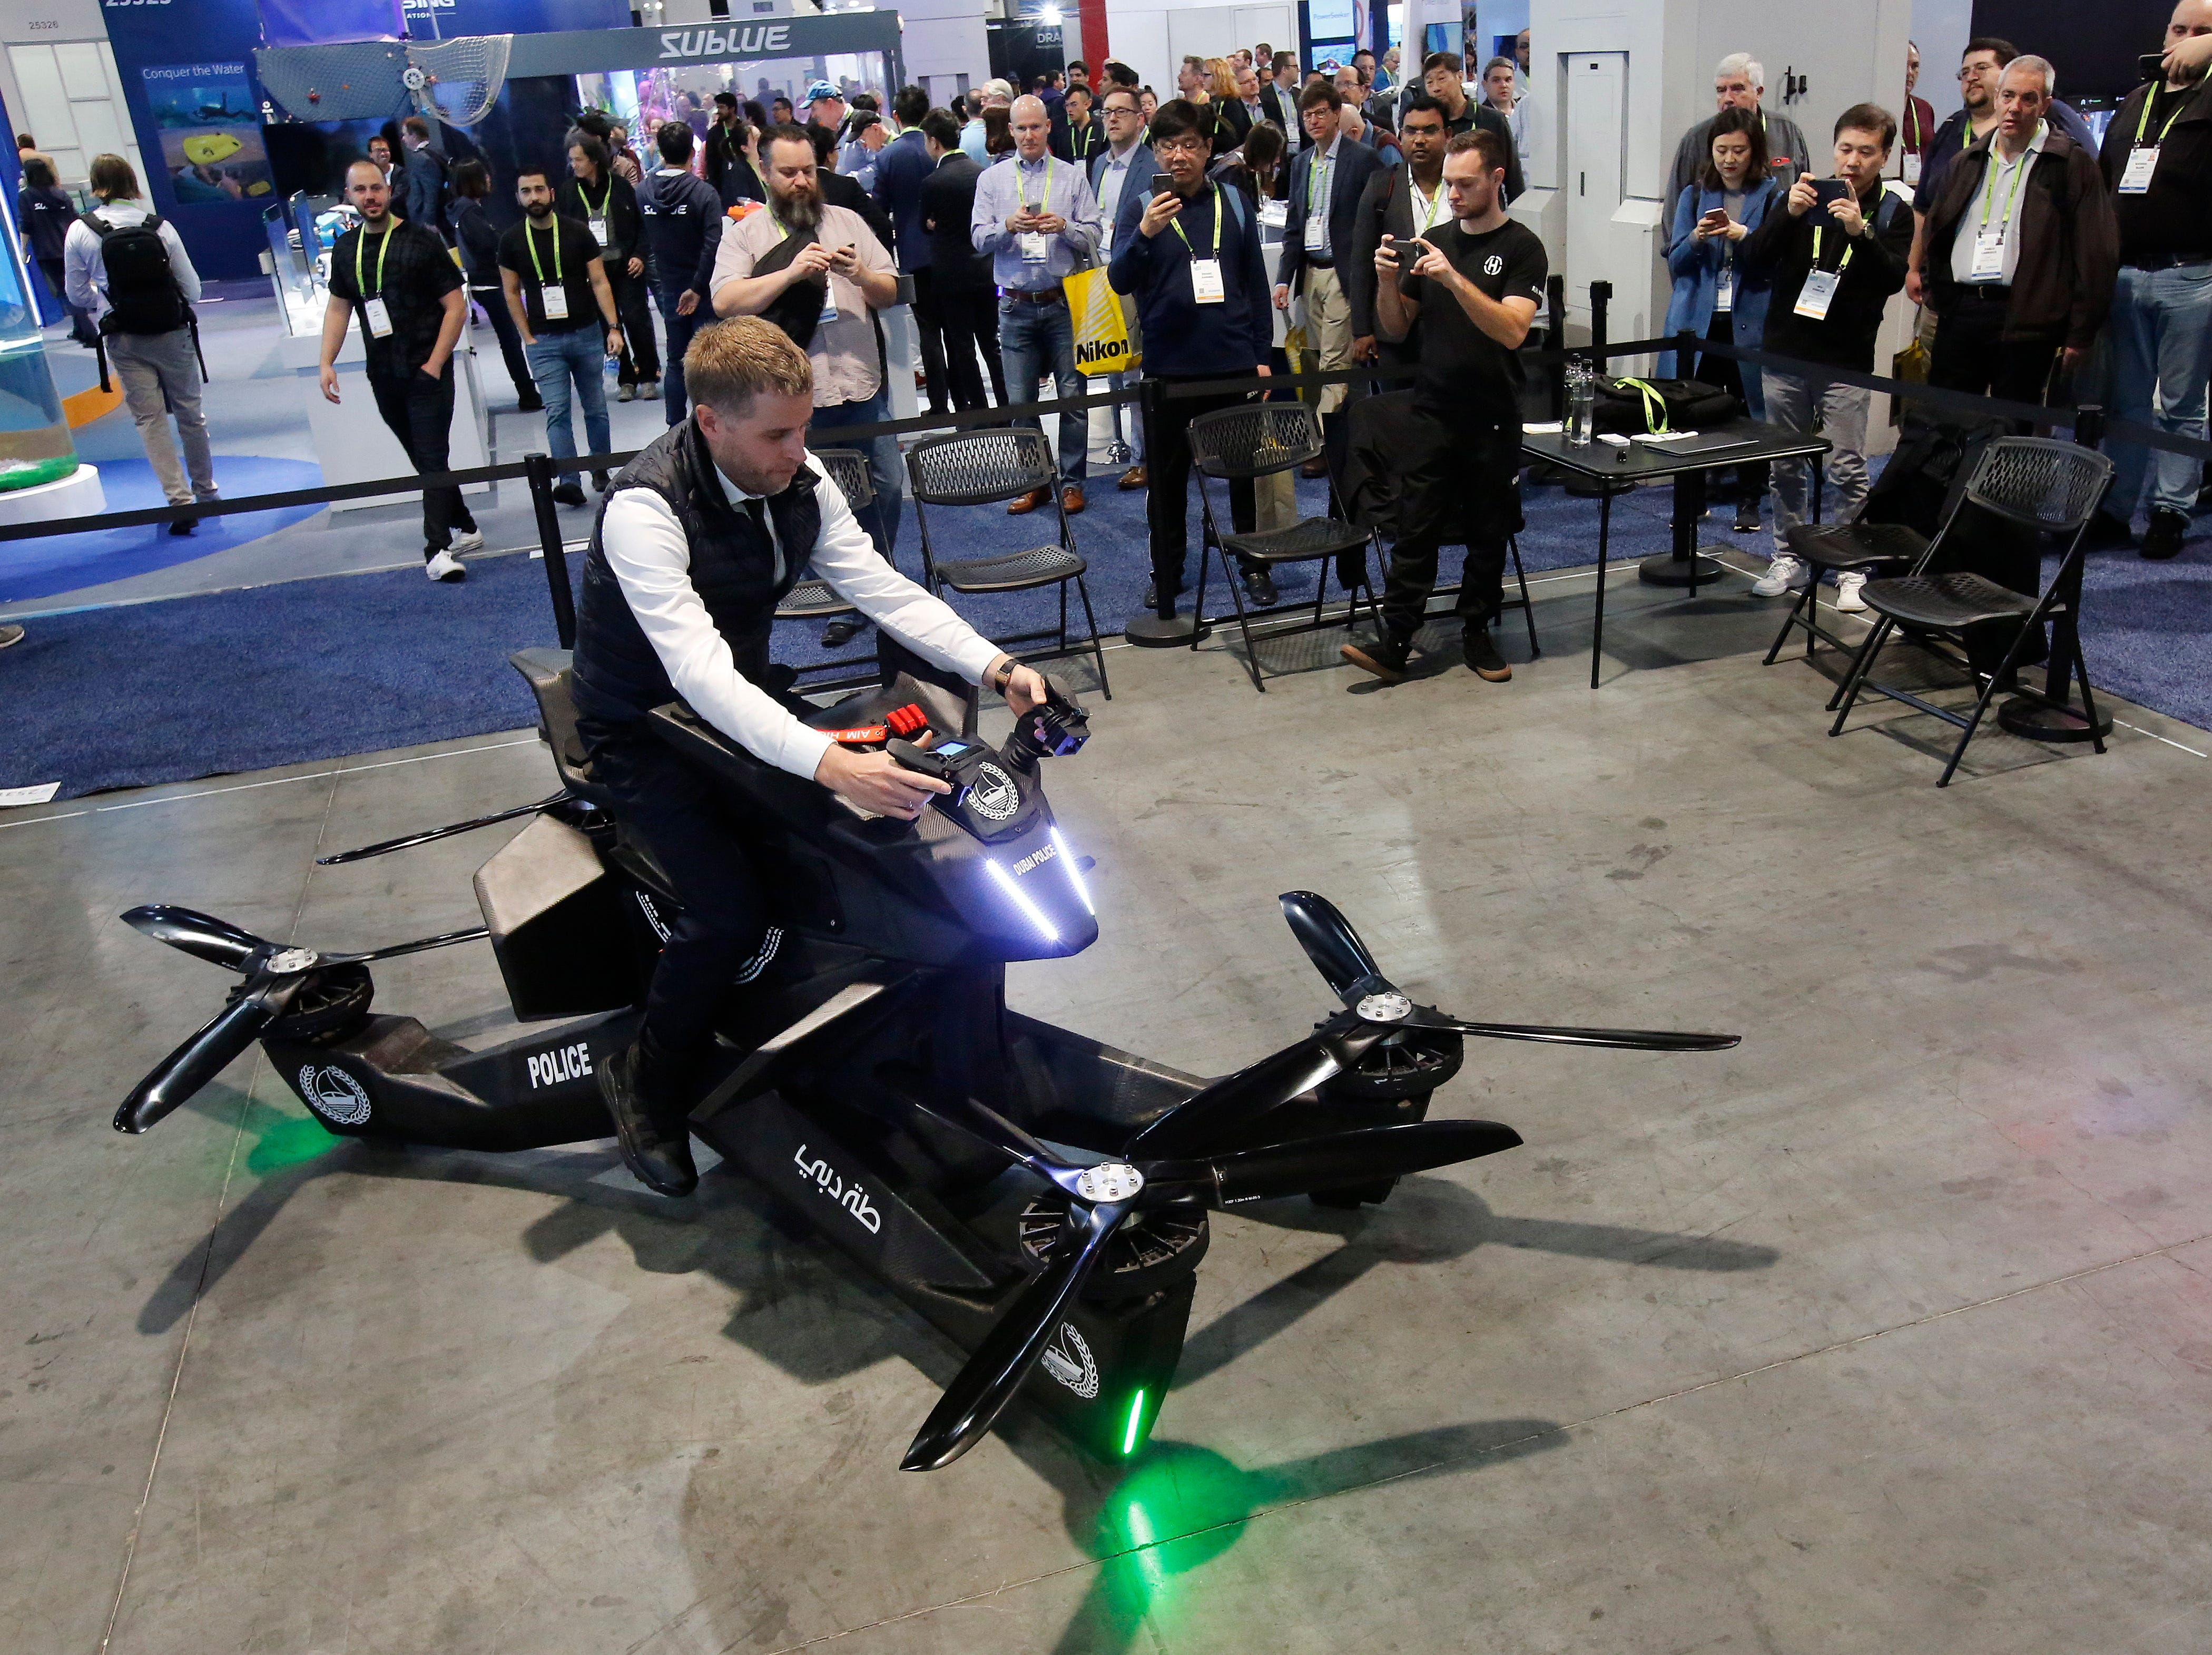 A Hoverbike on the opening day of the 2019 International Consumer Electronics Show.